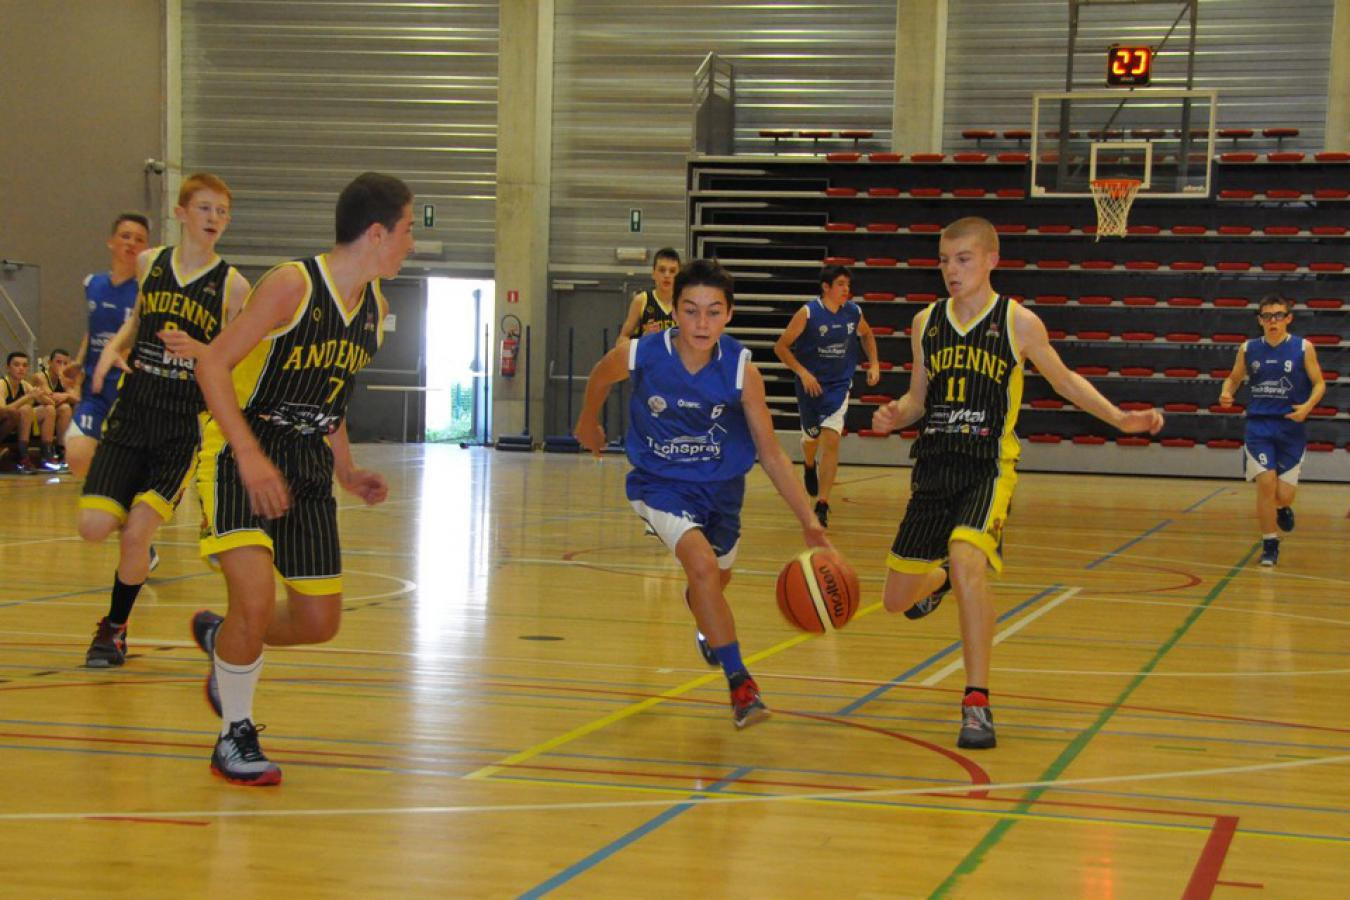 22/08/15 : U16 G Reg ANDENNE / CINEY